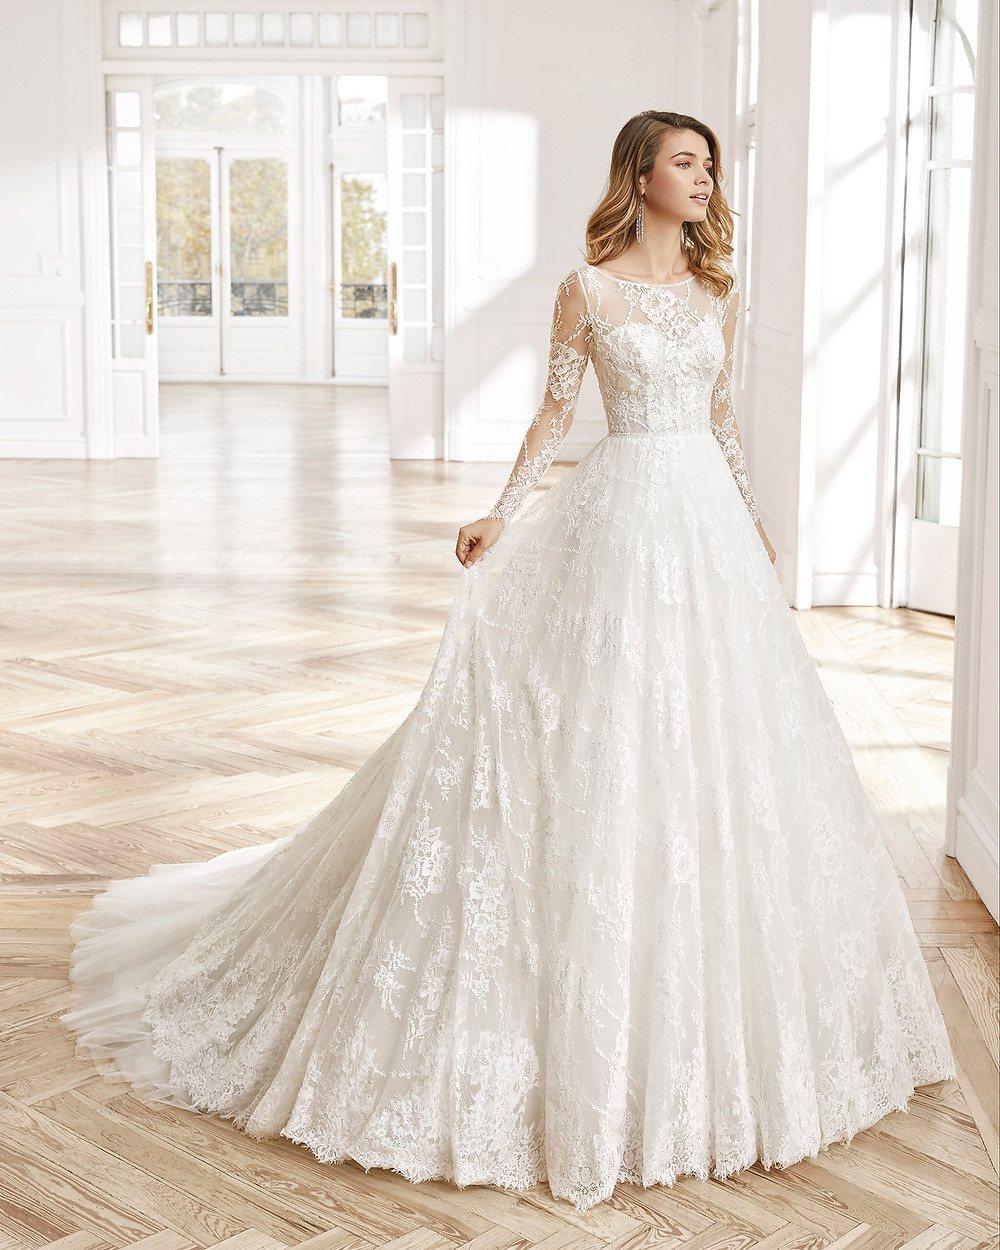 An Aire Barcelona 2020 lace princess ball gown wedding dress with long illusion sleeves